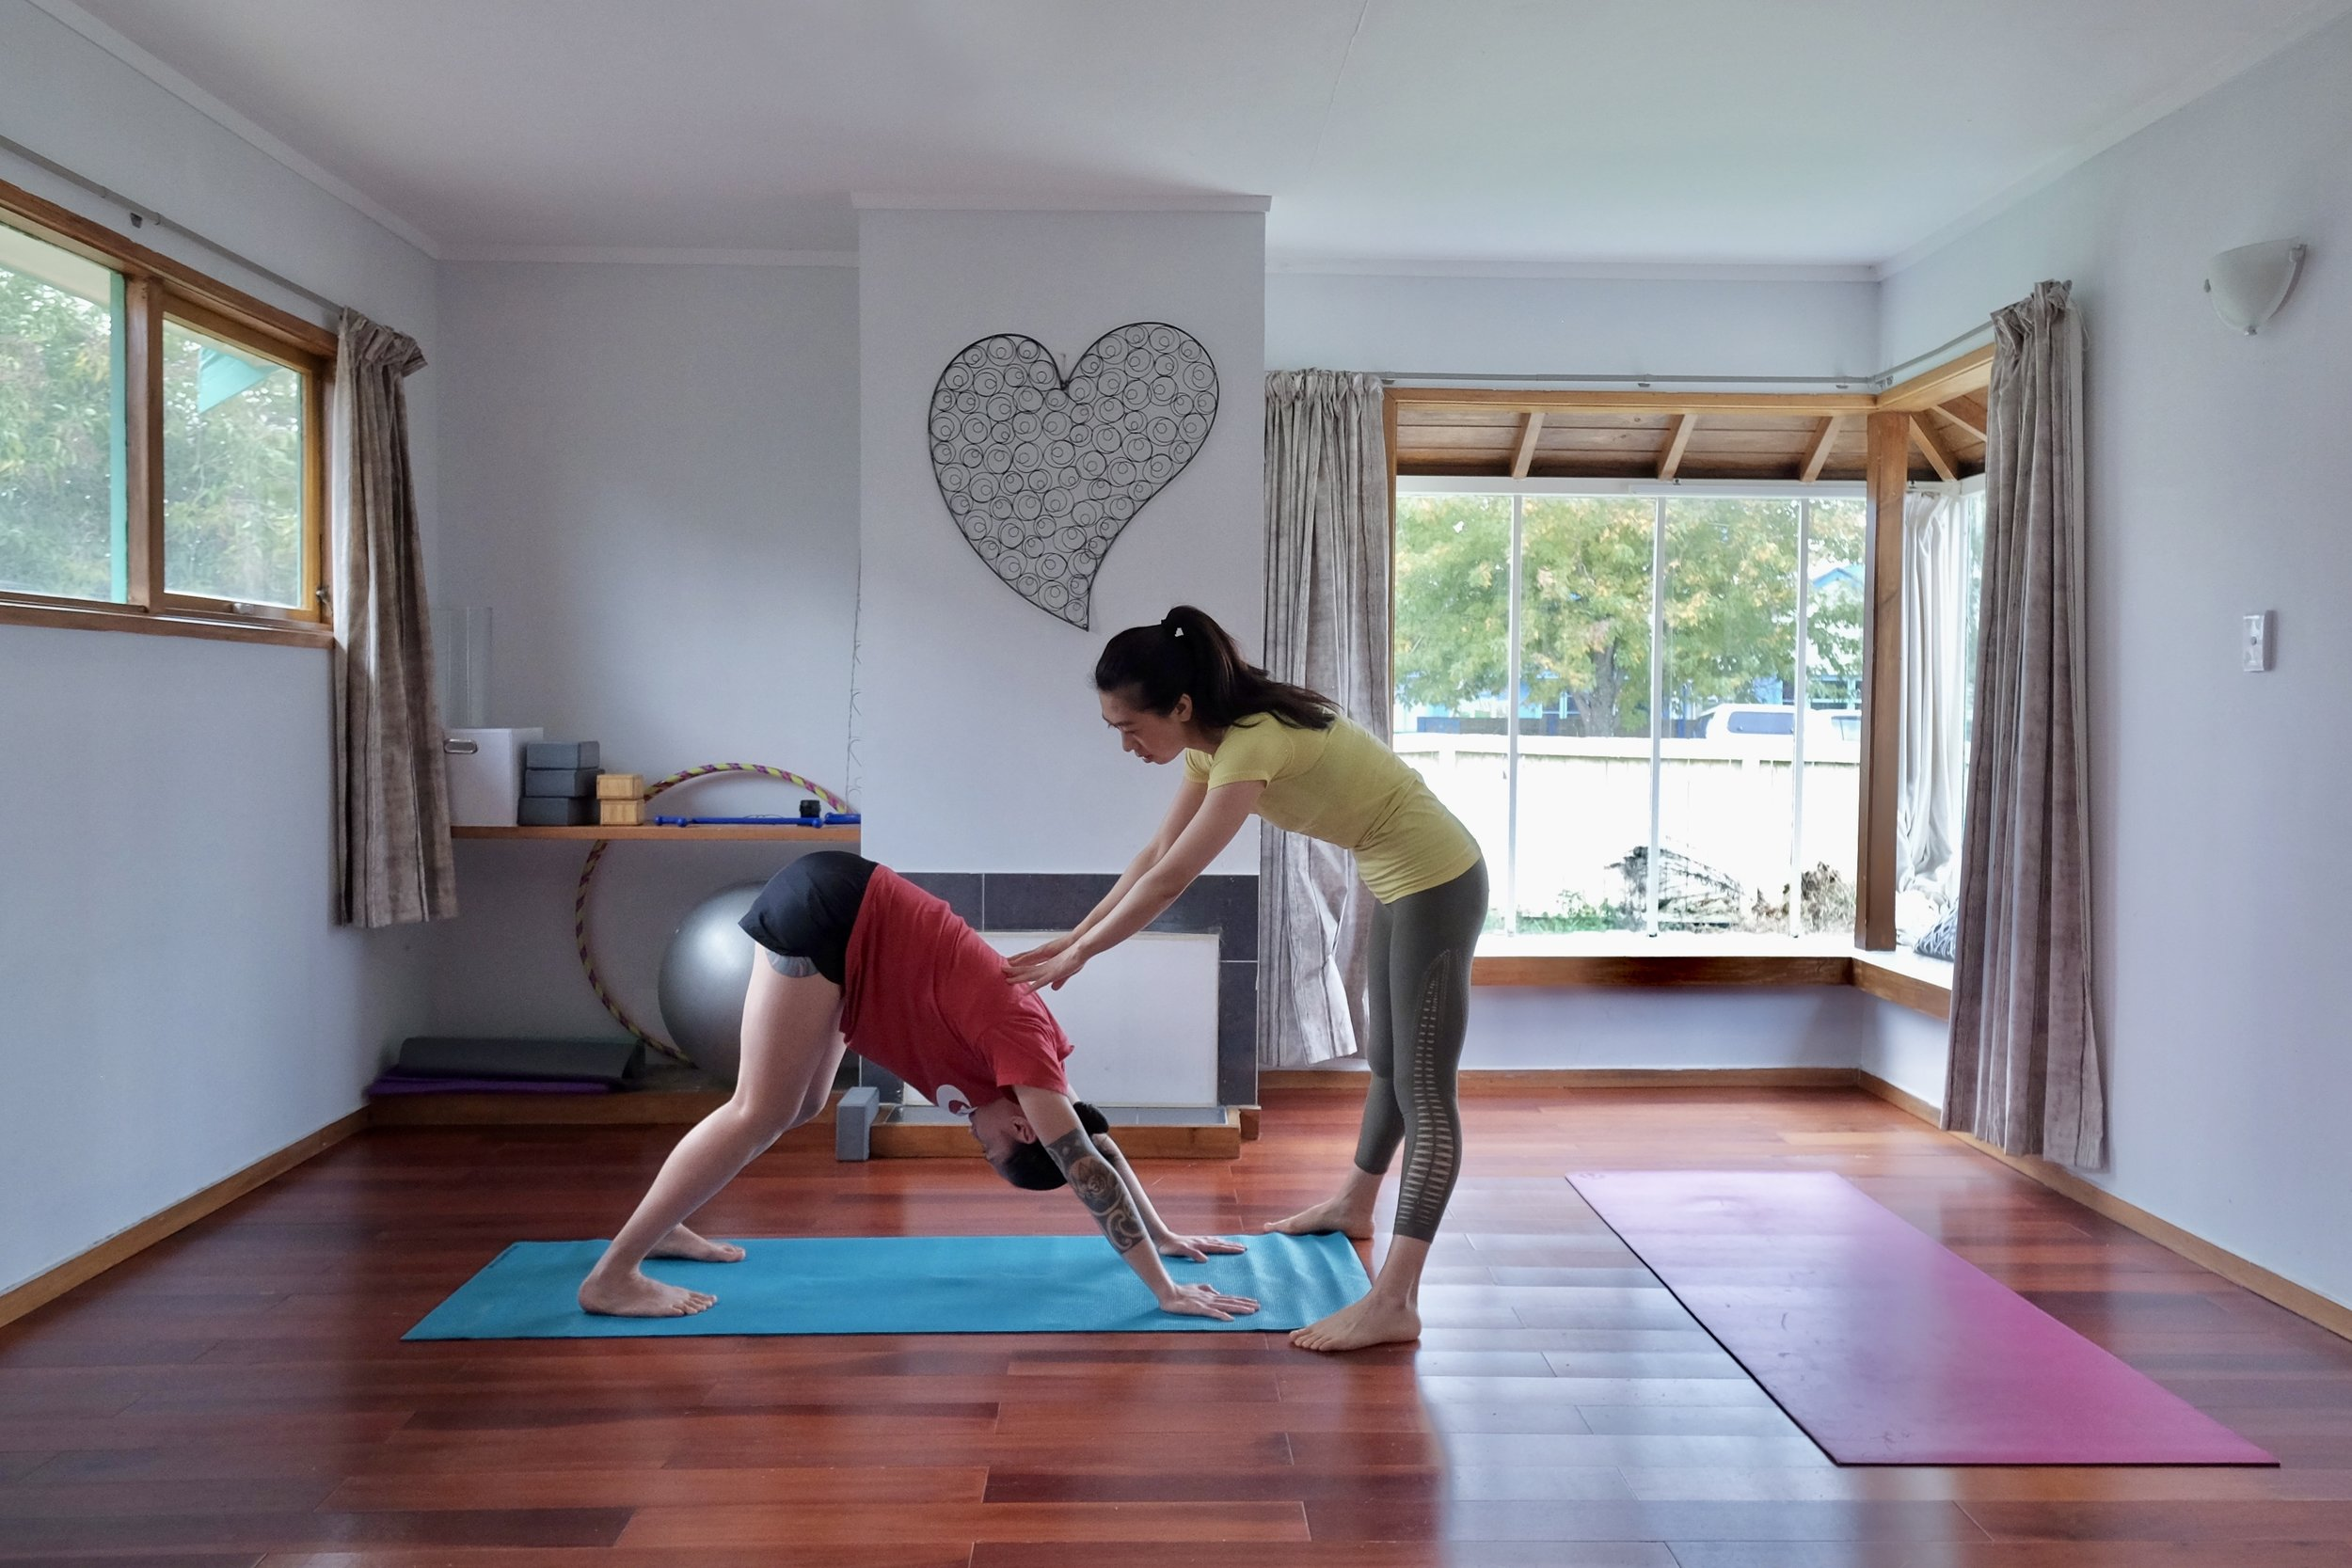 Yoga & meditation classes - Weekly classes in Takapuna for strengthening your body and relaxing your mind.